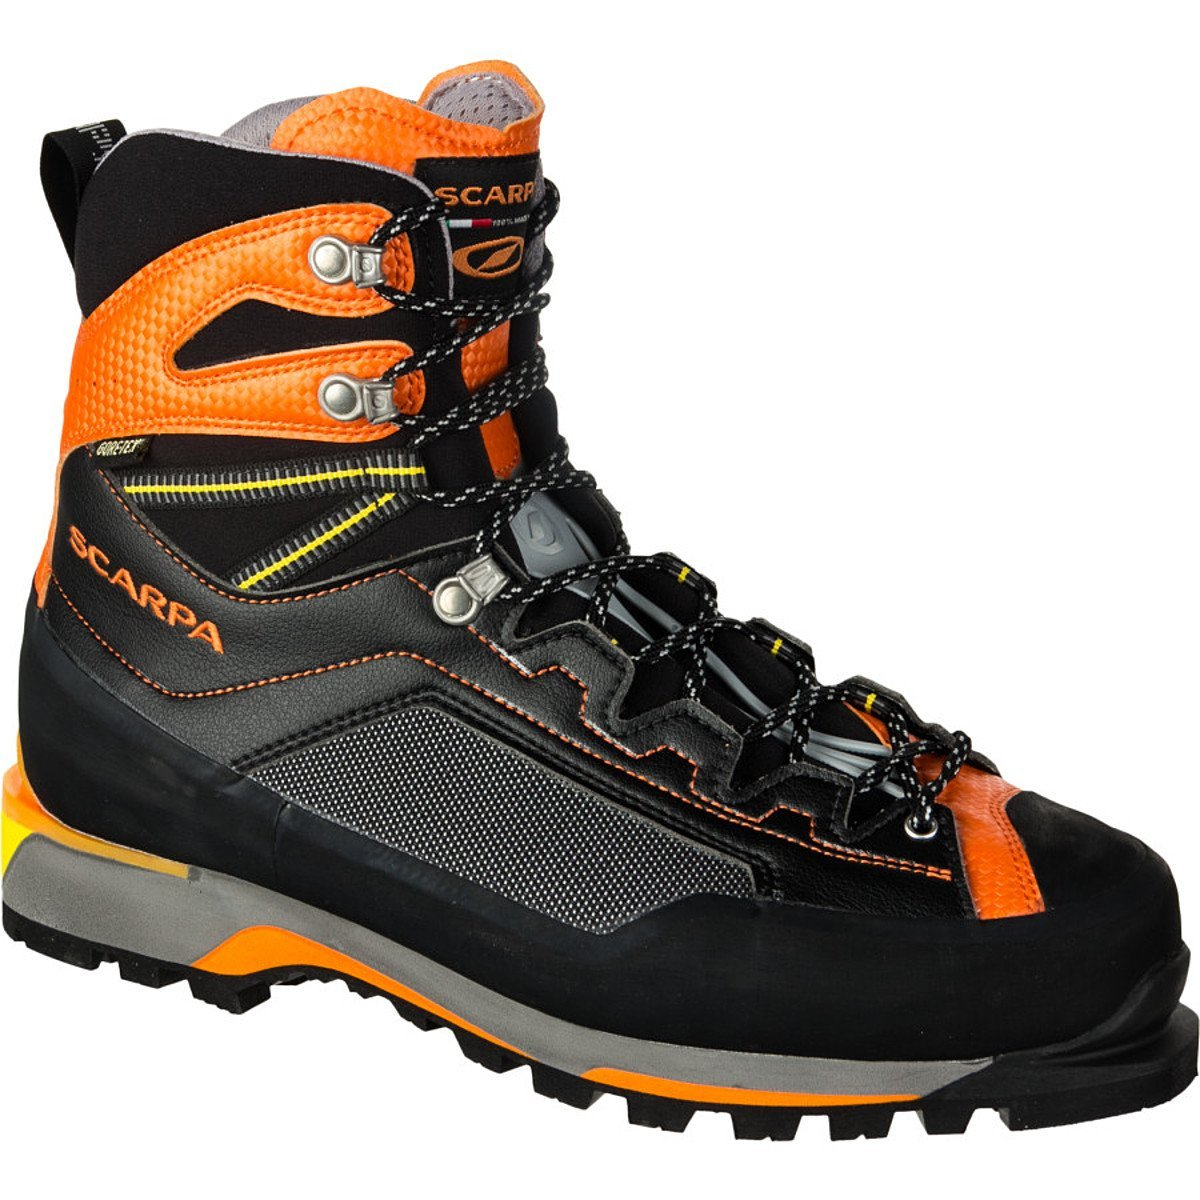 Scarpa Men's Rebel Pro GTX Mountaineering Boots B00GE9096Q 42.5 M EU|Black / Orange